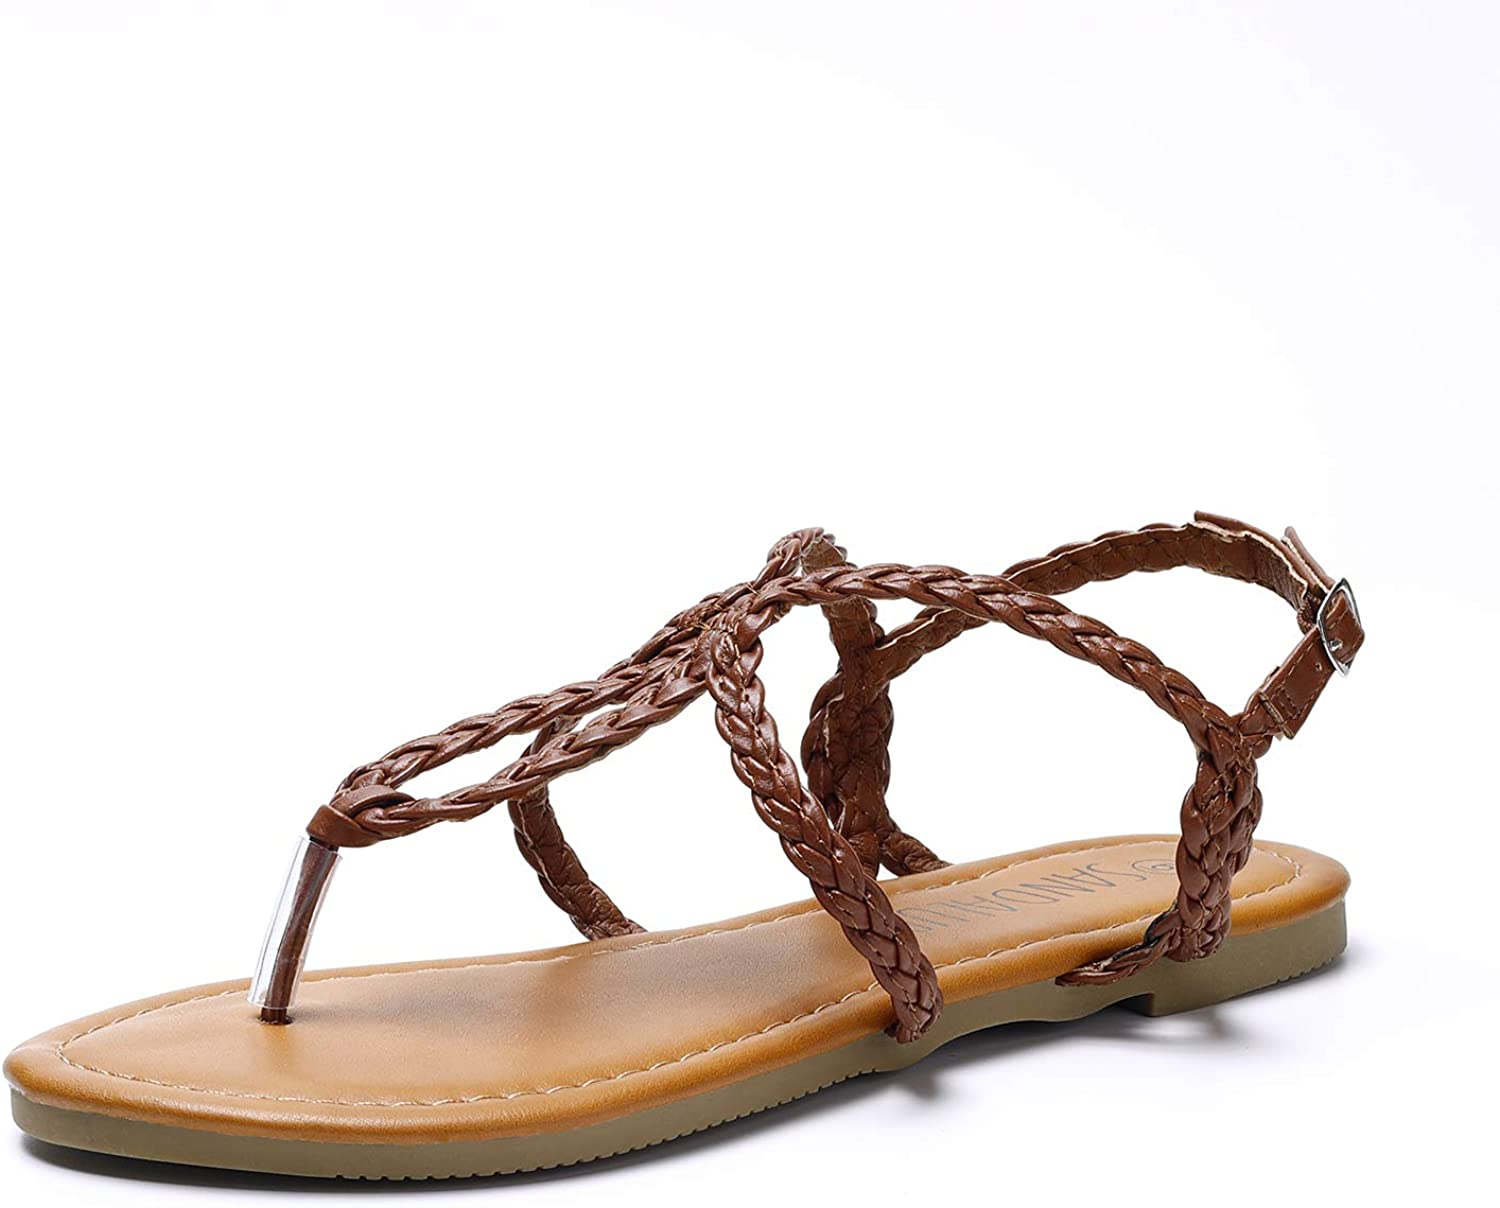 Sandalup Women's Braided Strap Thong Flat Sandals